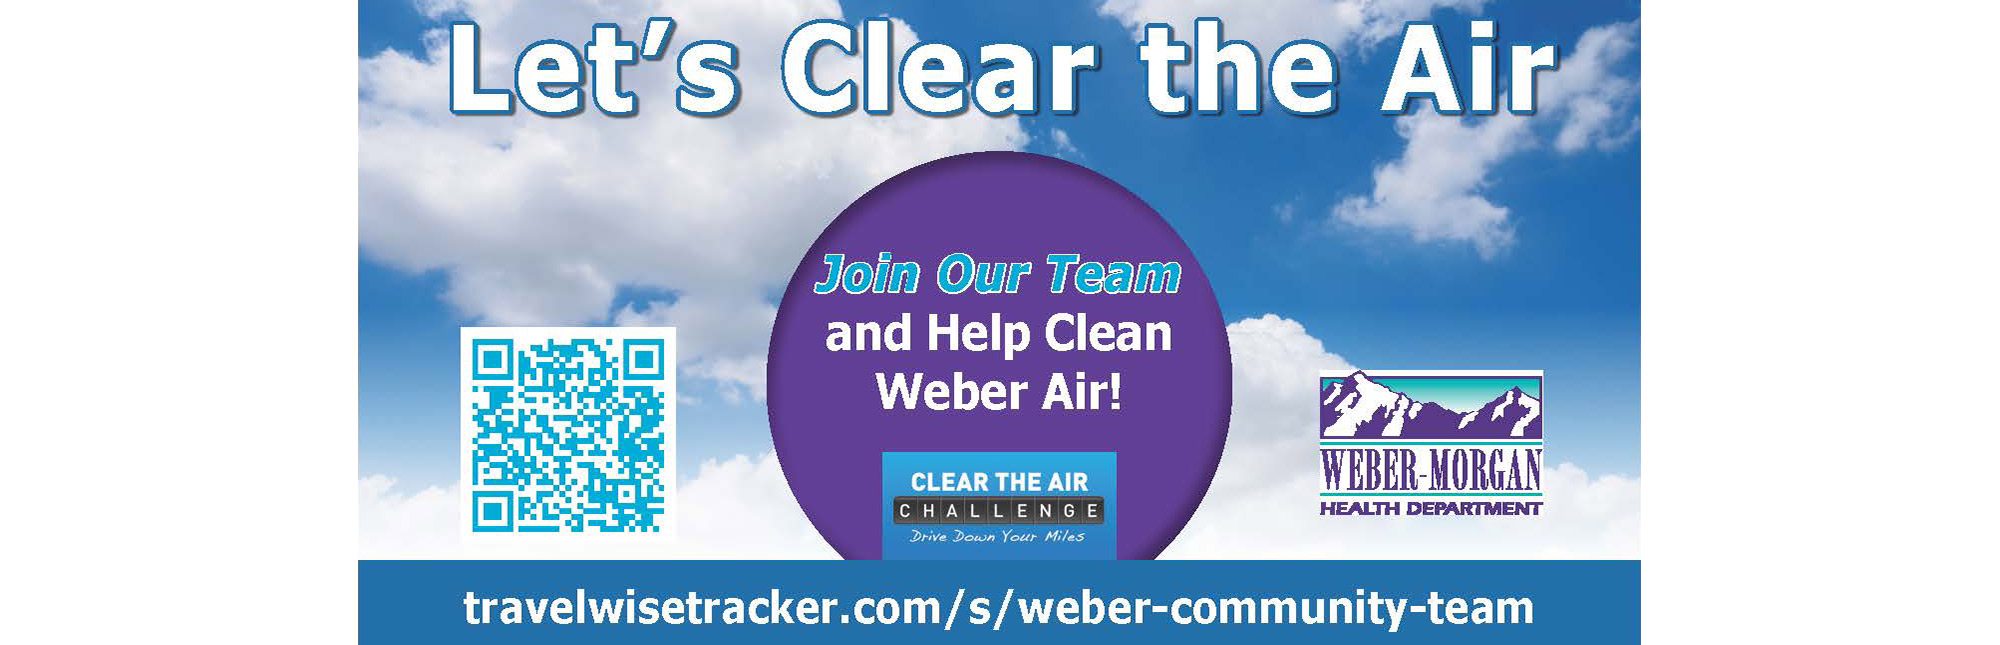 Clear the Air Challenge image